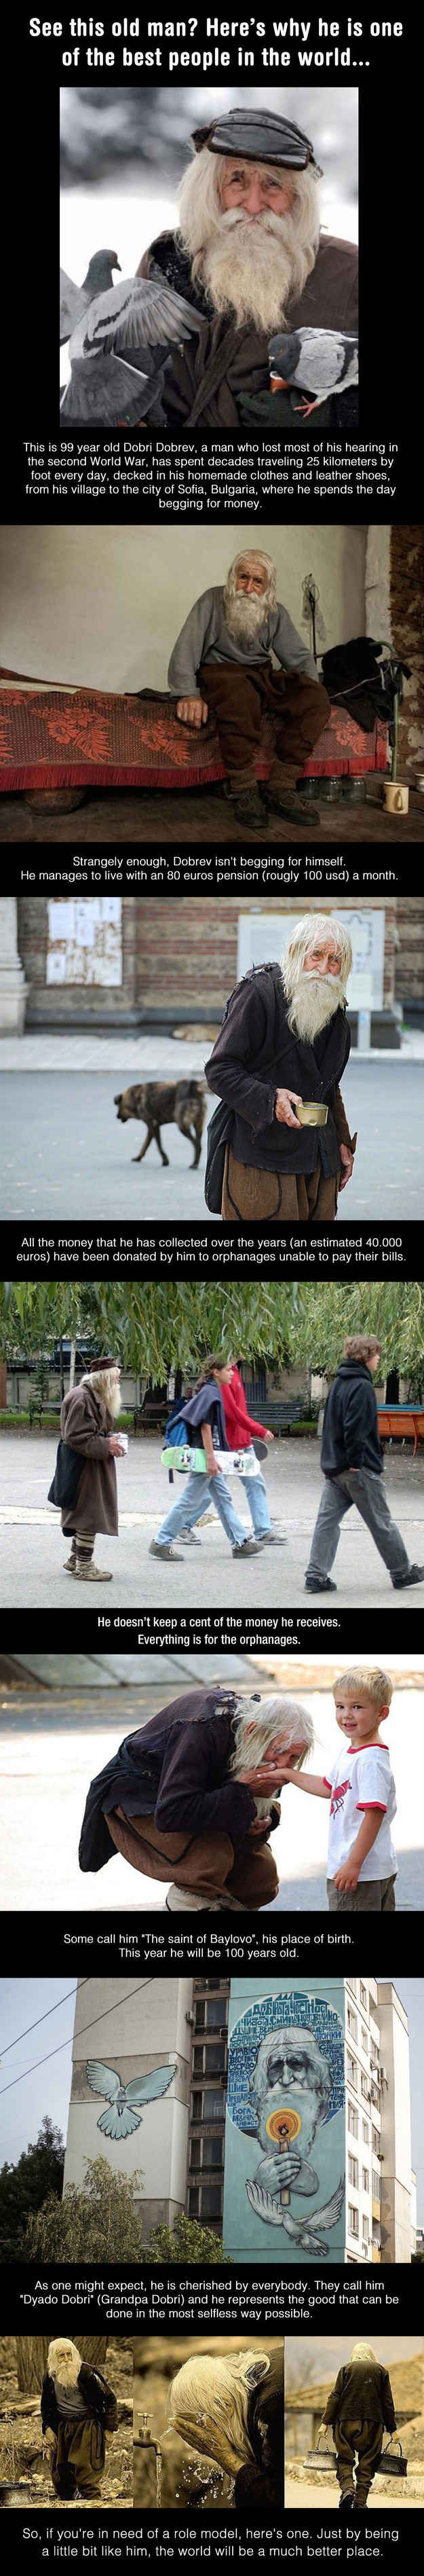 Dobri Dobrev's story: | 33 Pictures That Will Make You Proud To Be A Human Being Again